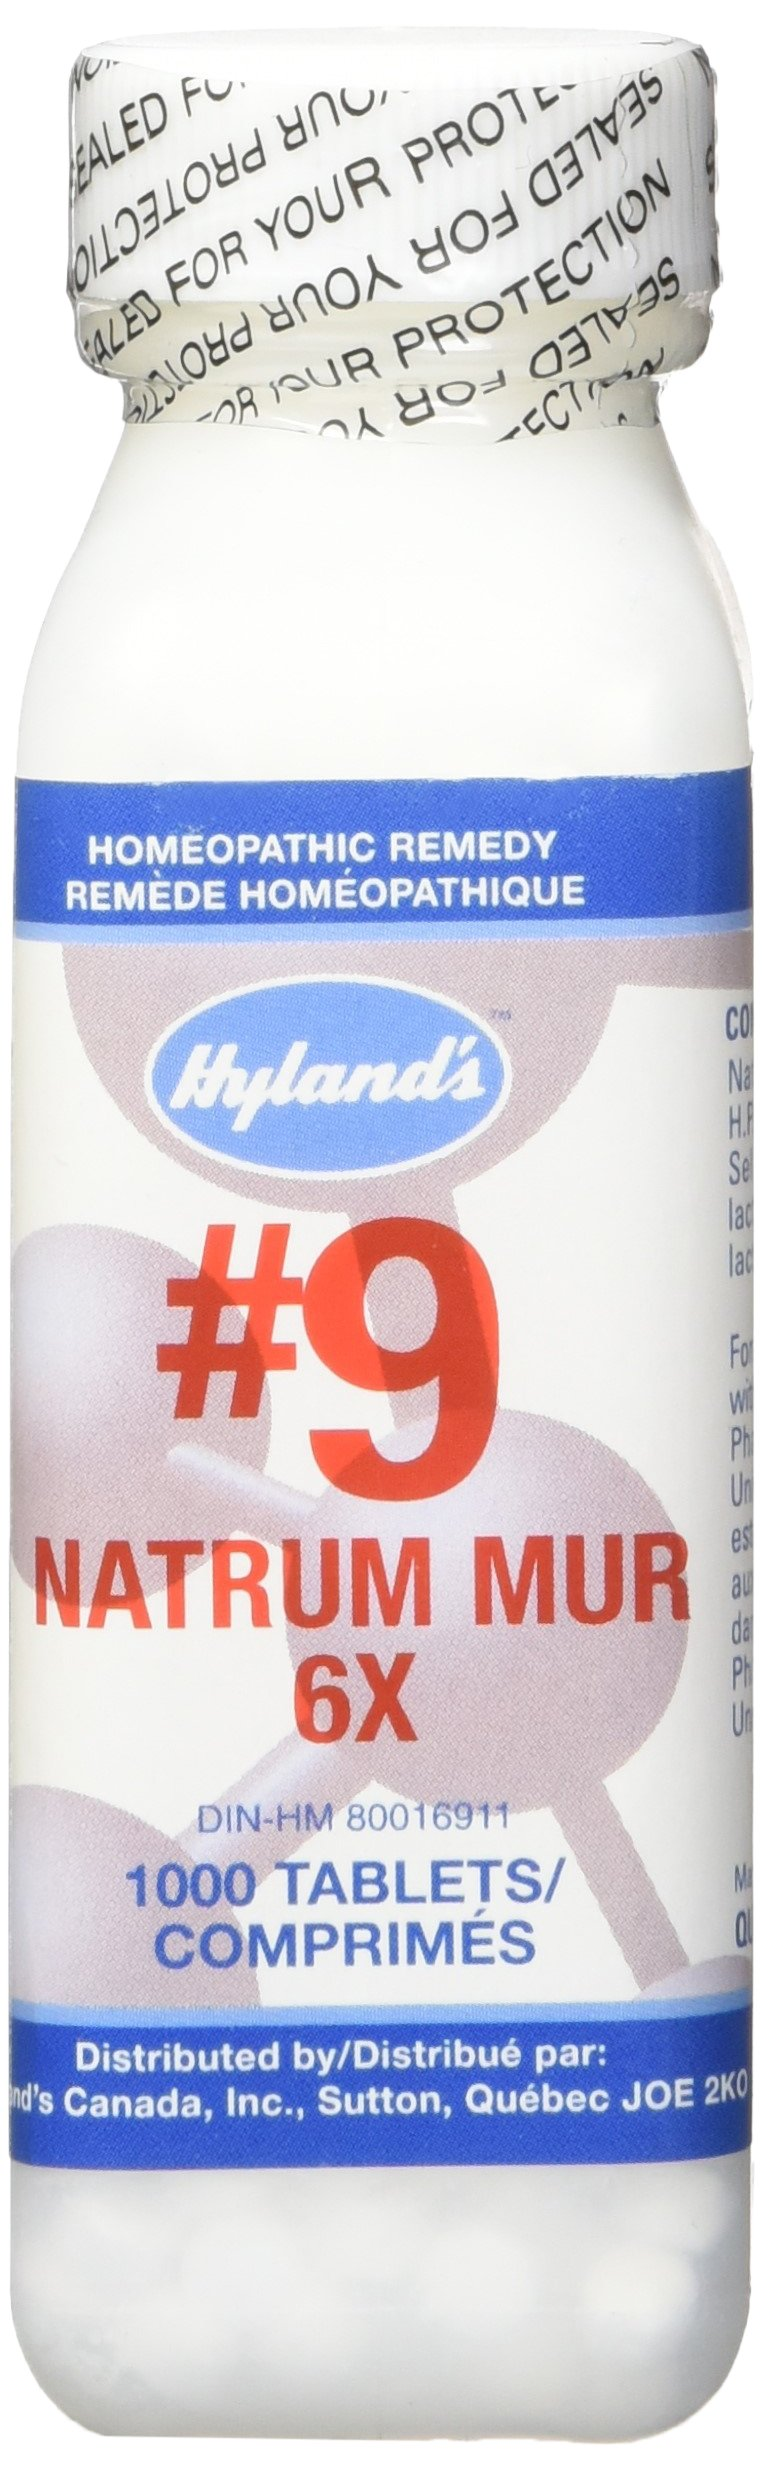 Hyland's Cell Salts #9 Natrum Muriaticum 6X Tablets, Natural Homeopathic Relief of Headache & Indigestion, 1000 Count